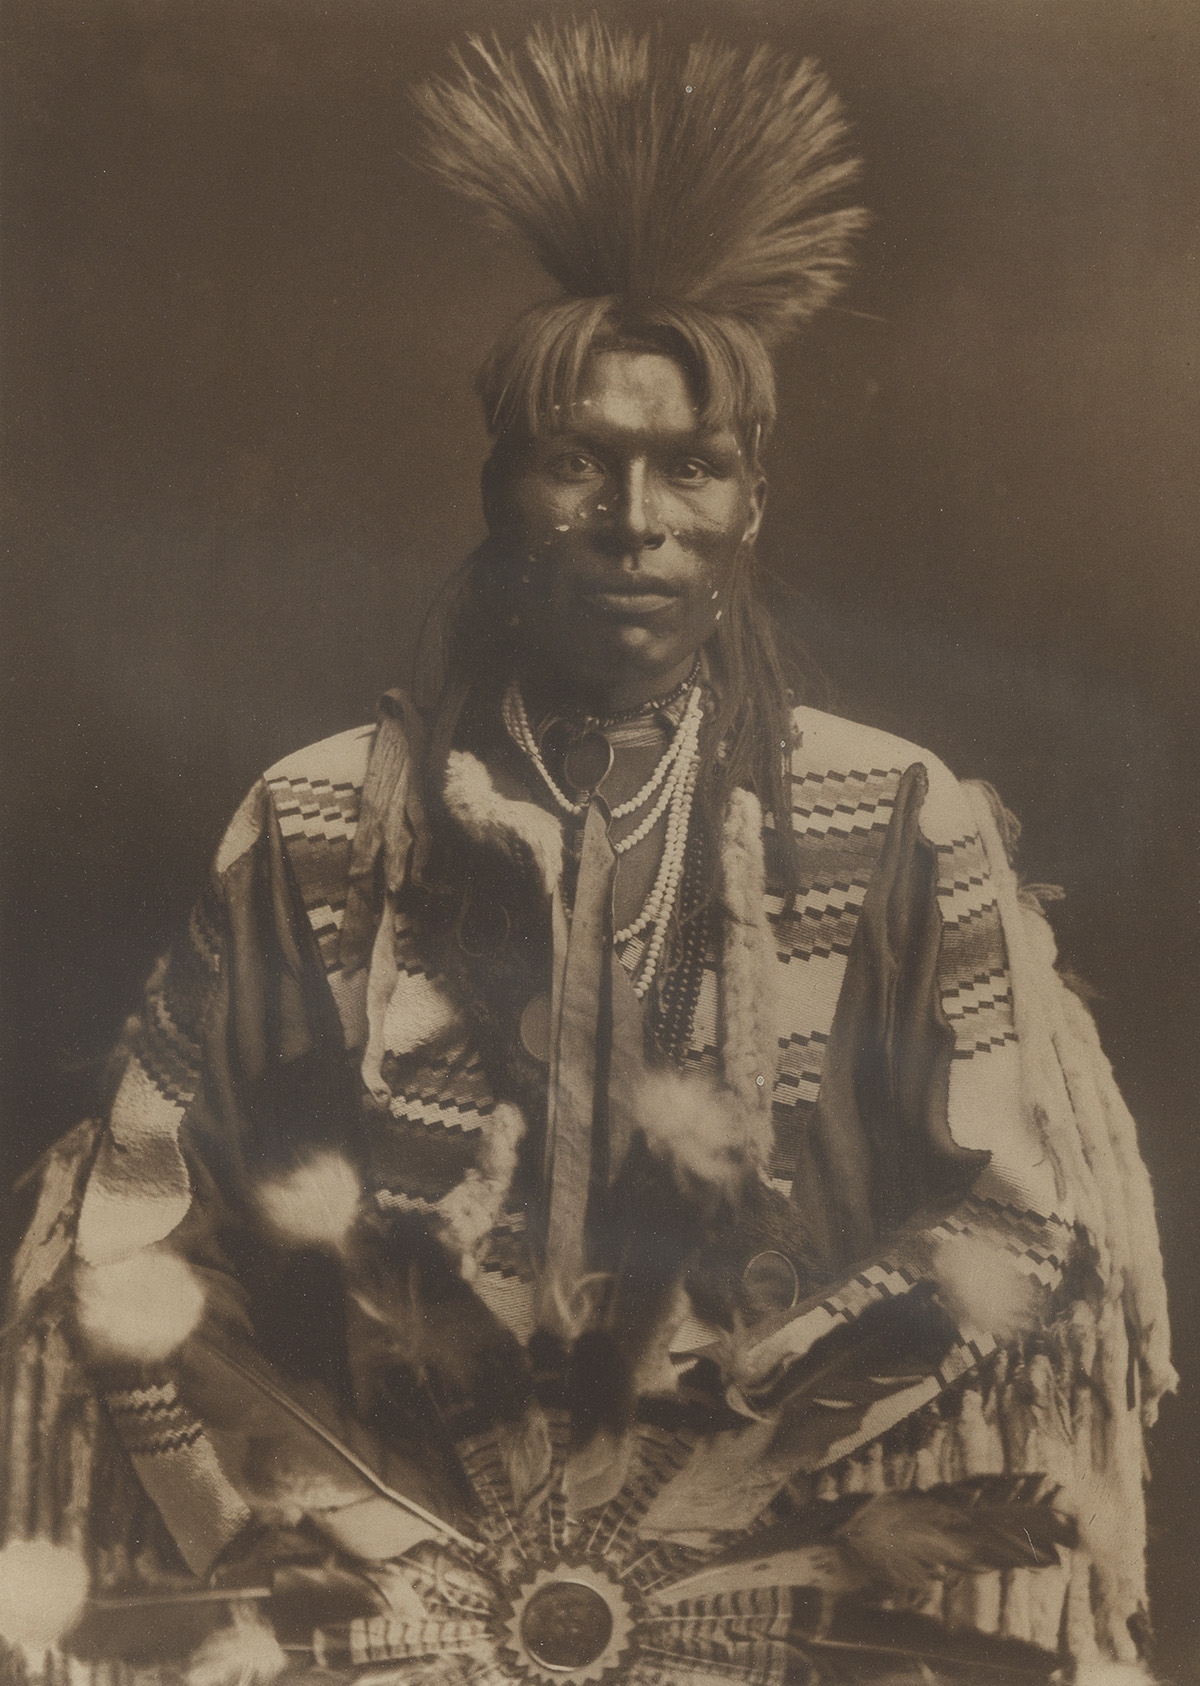 EDWARD S. CURTIS (1868-1952) Group of 6 large-format photogravures from The North American Indian, Portfolio VI.